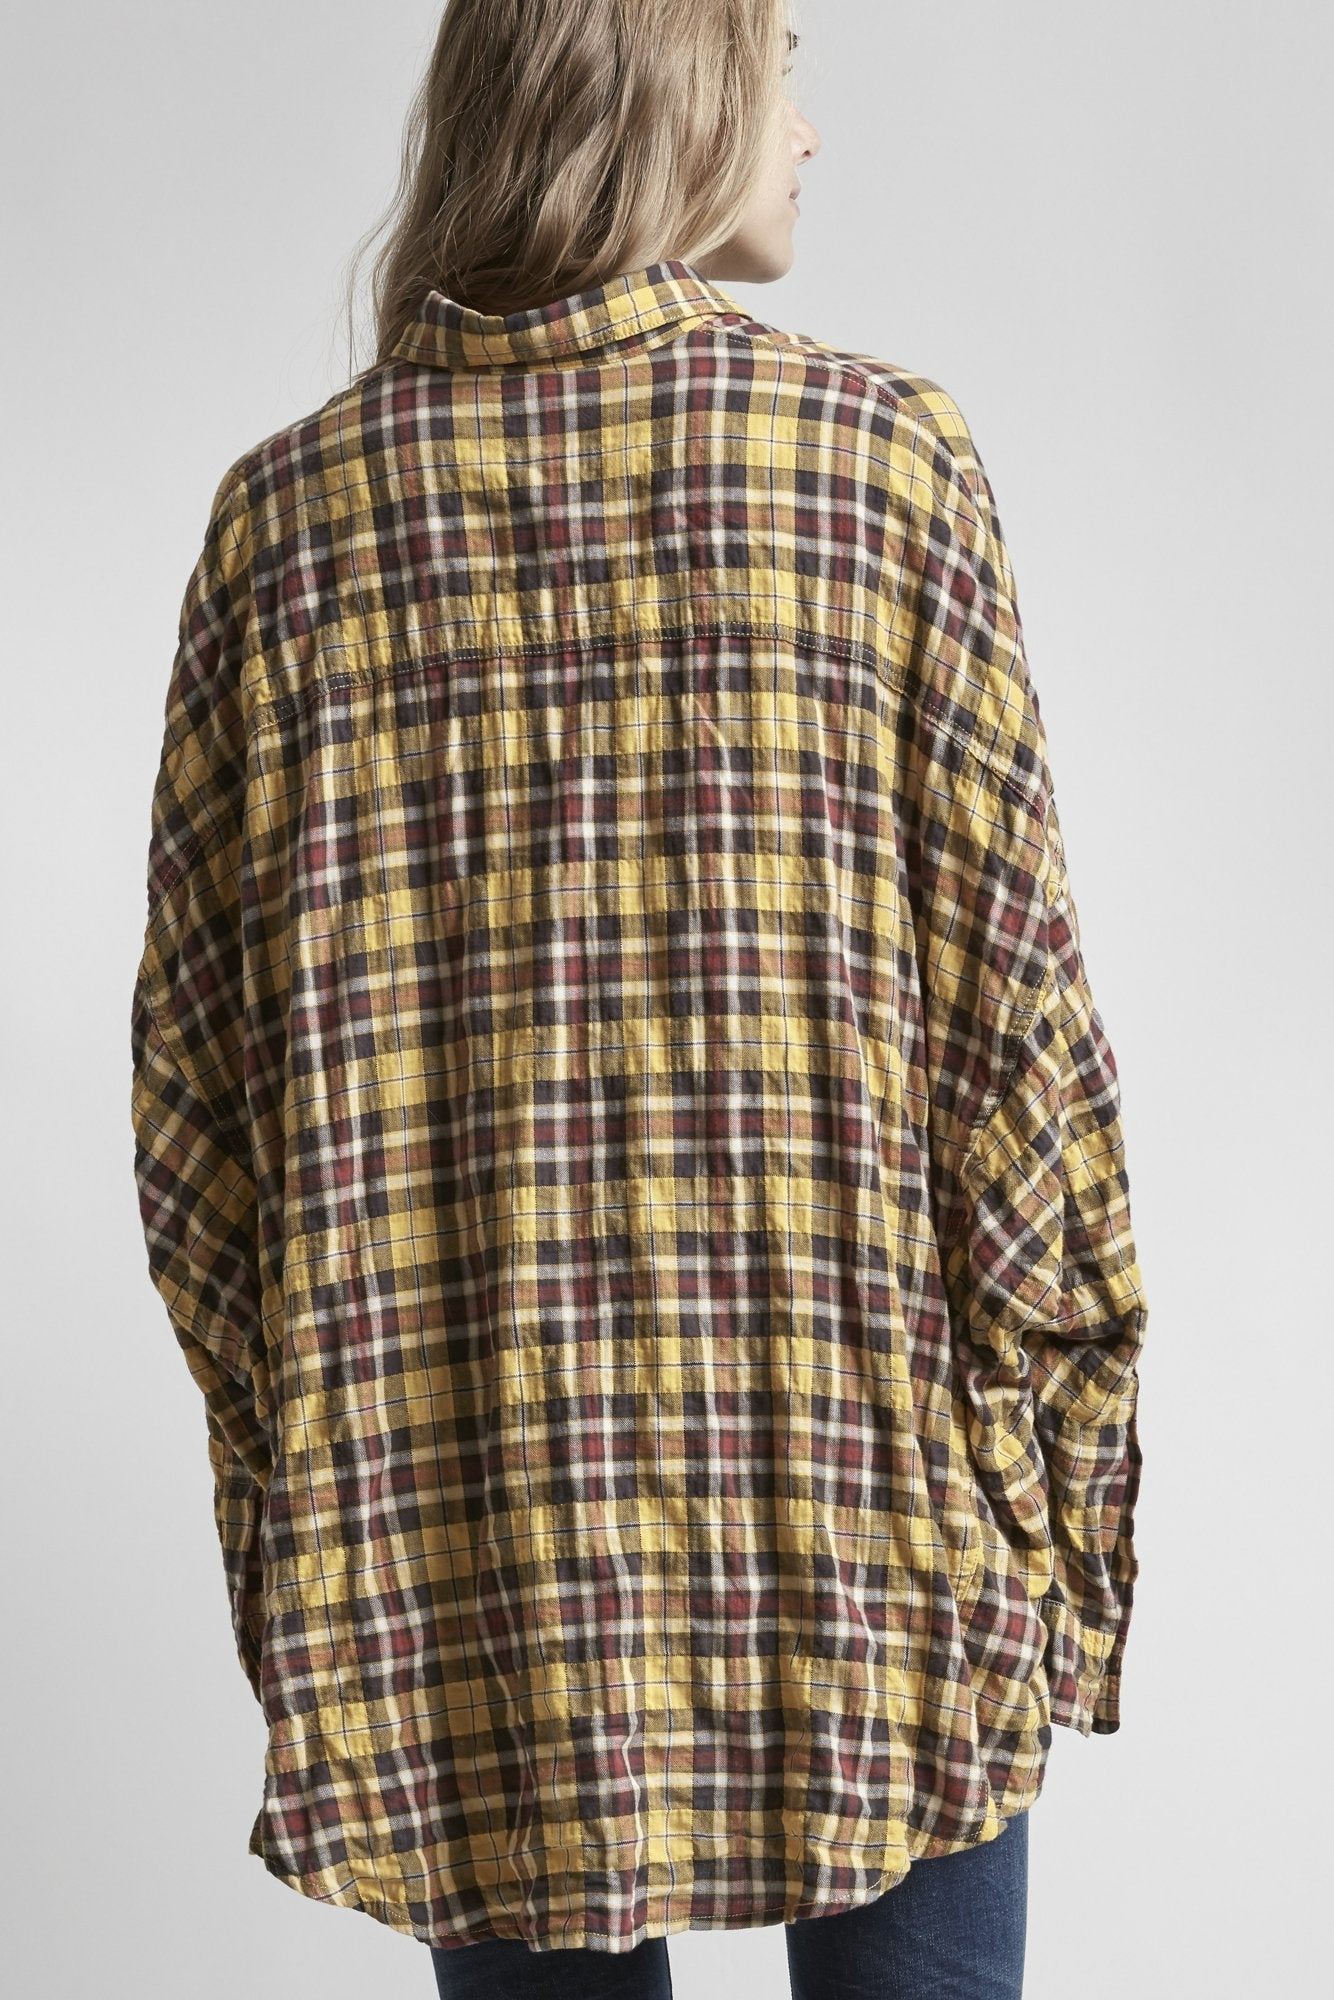 Oversized Plaid Shirt - Yellow Plaid